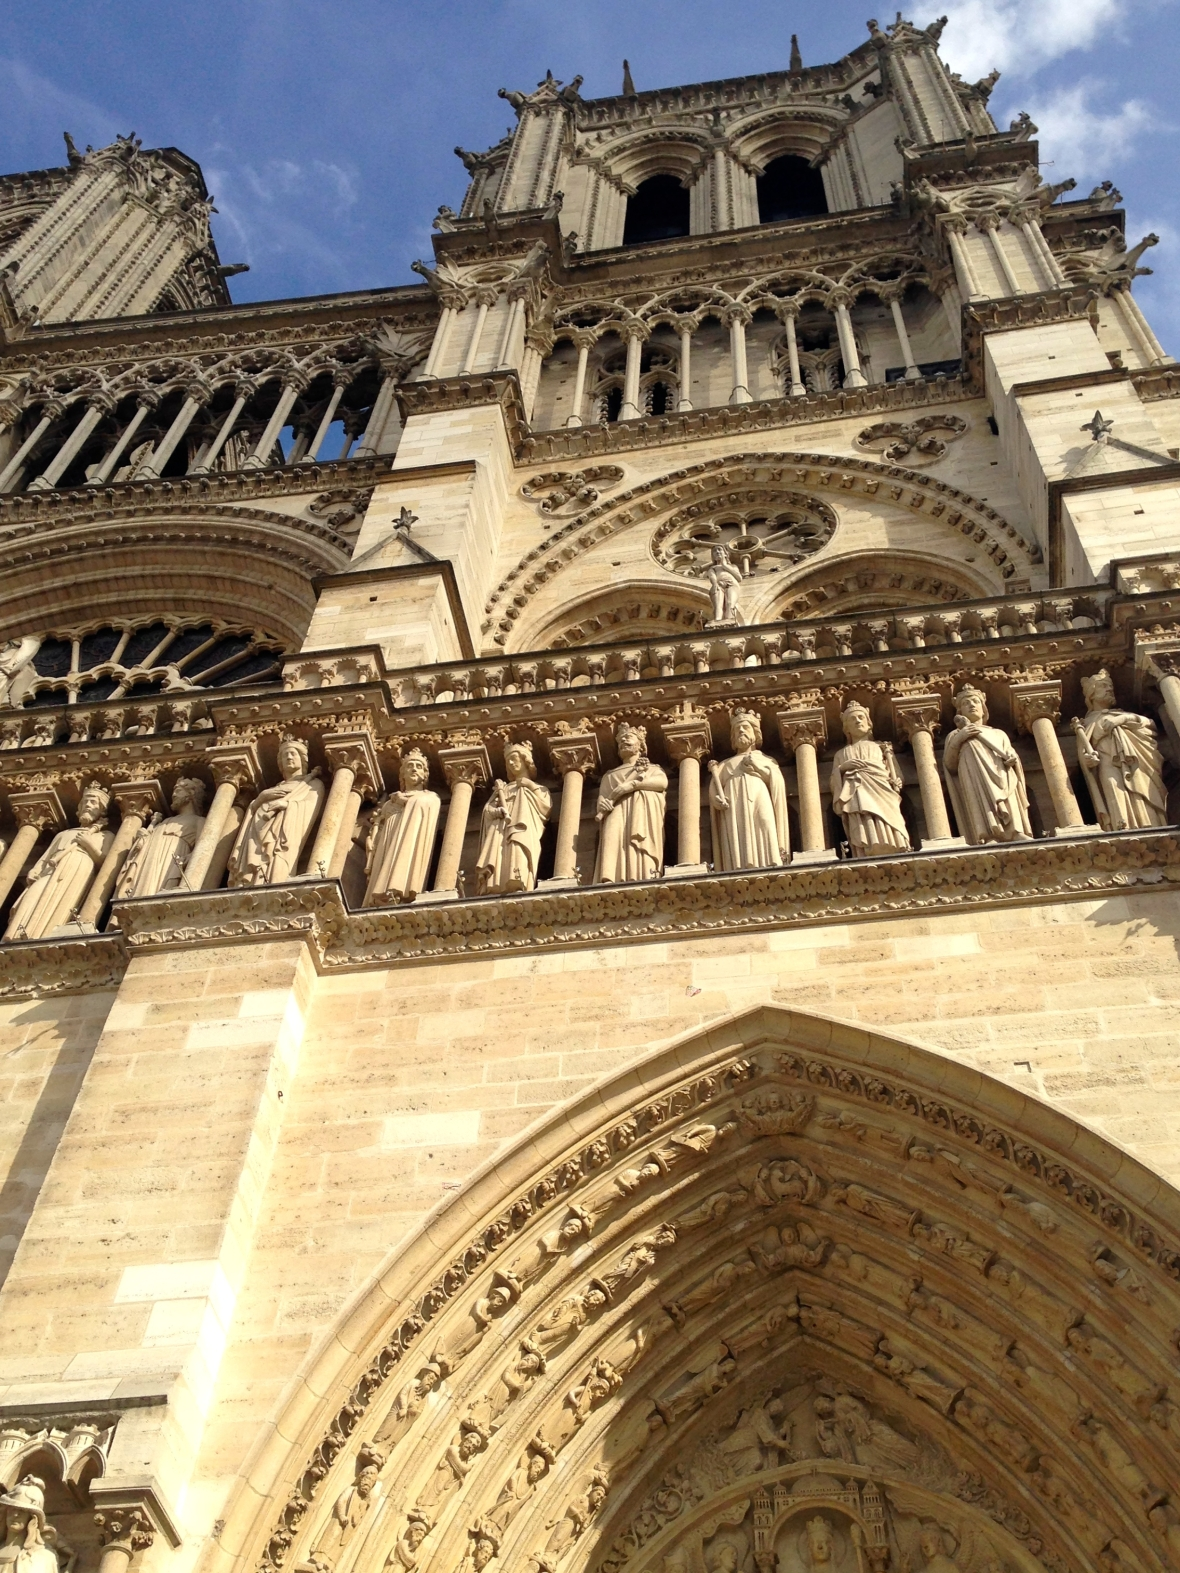 Notre Dame - Paris, France. Two Days in Paris via Smile There's Gin